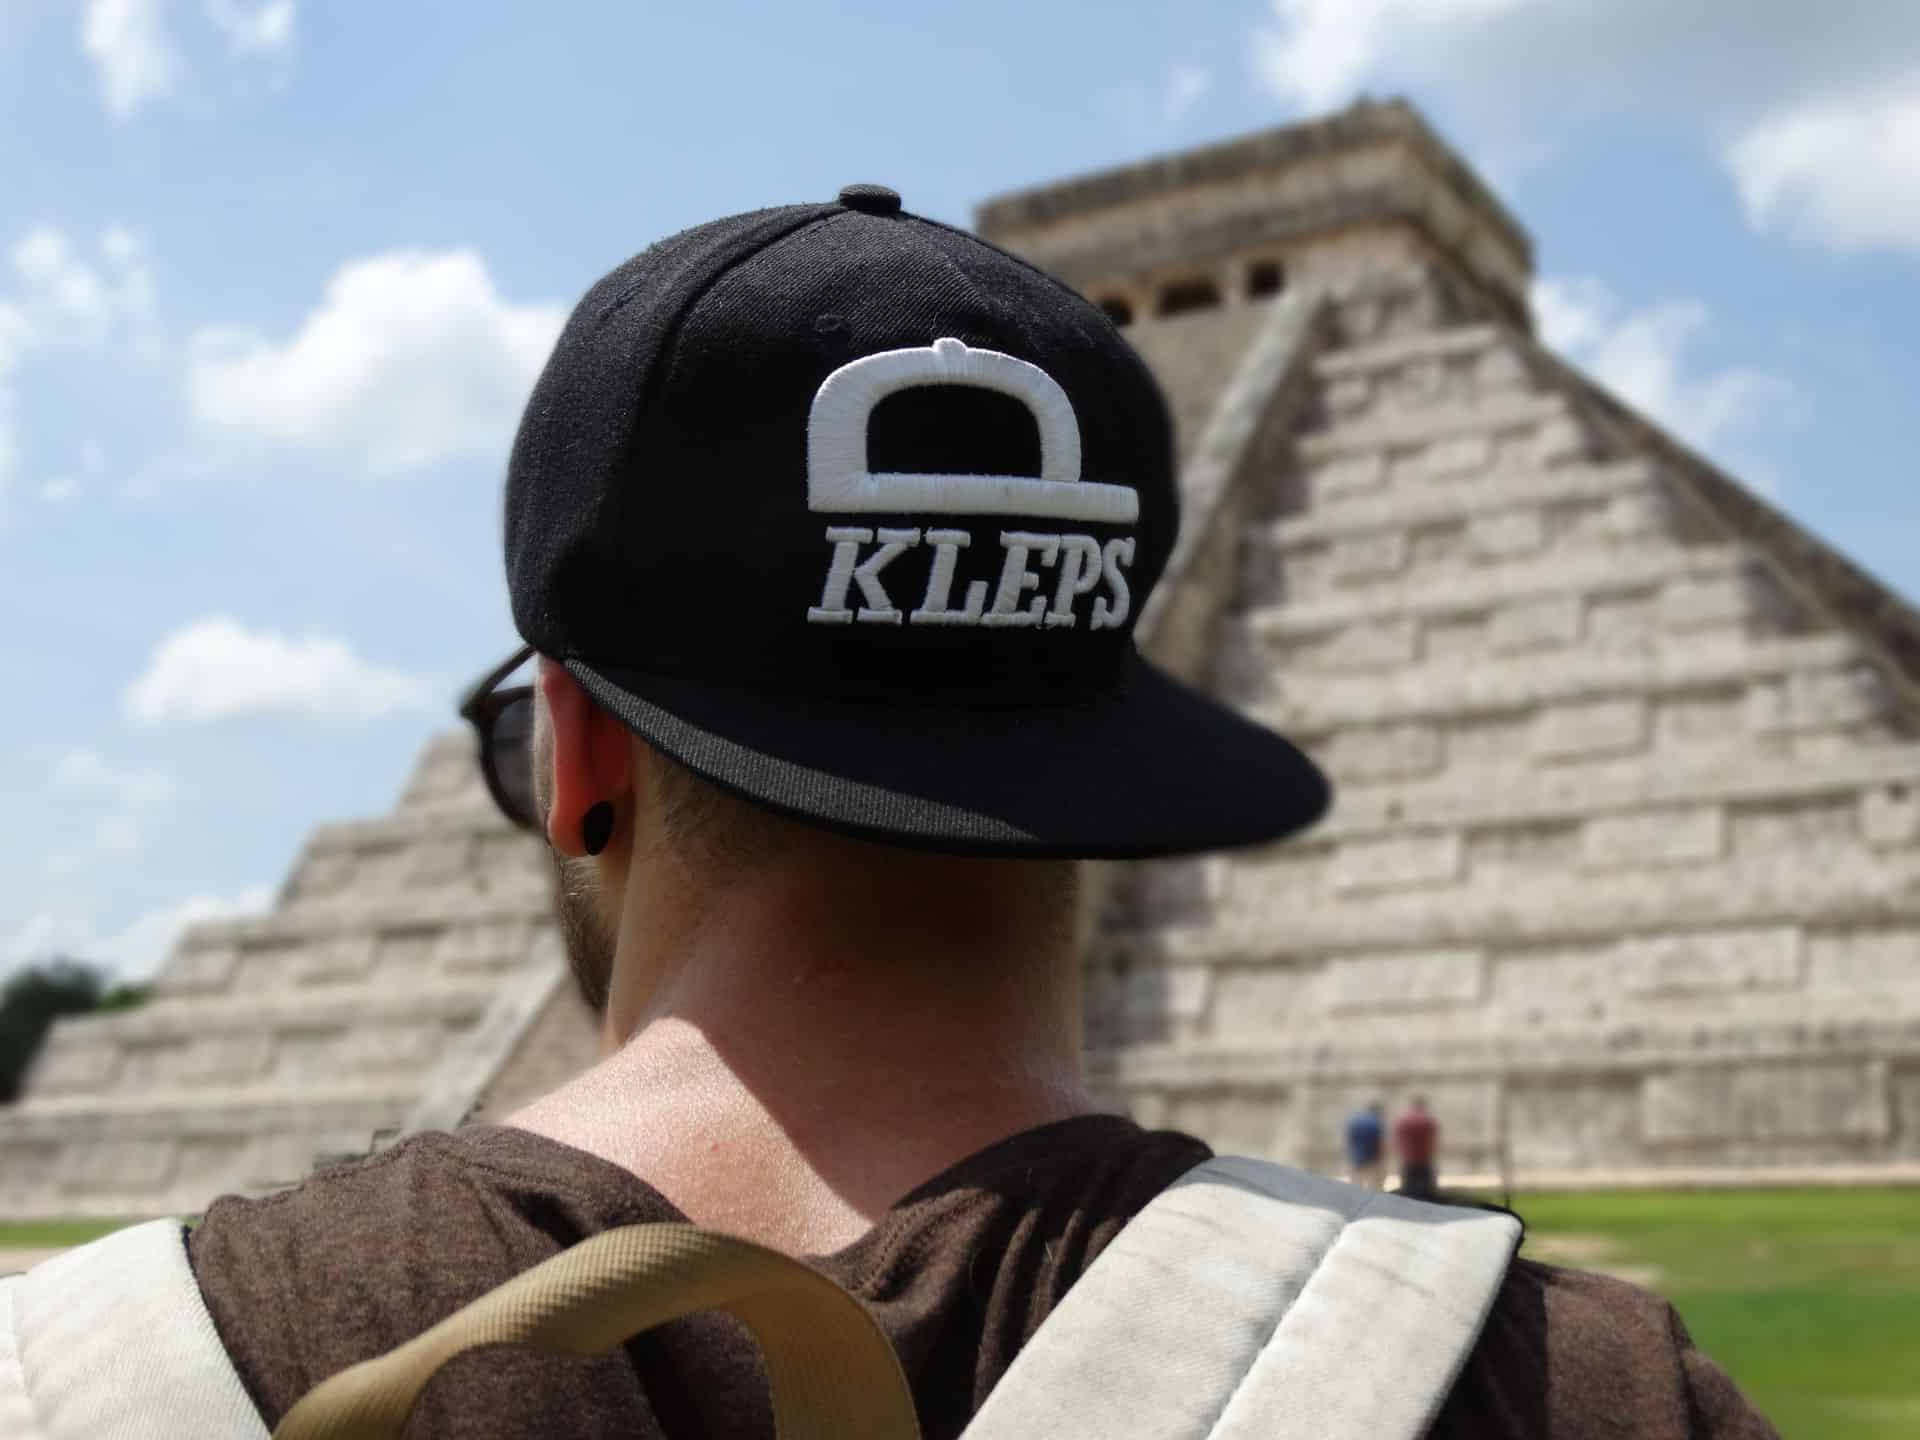 Buy your snapback cap online at KLEPS HEADWEAR.